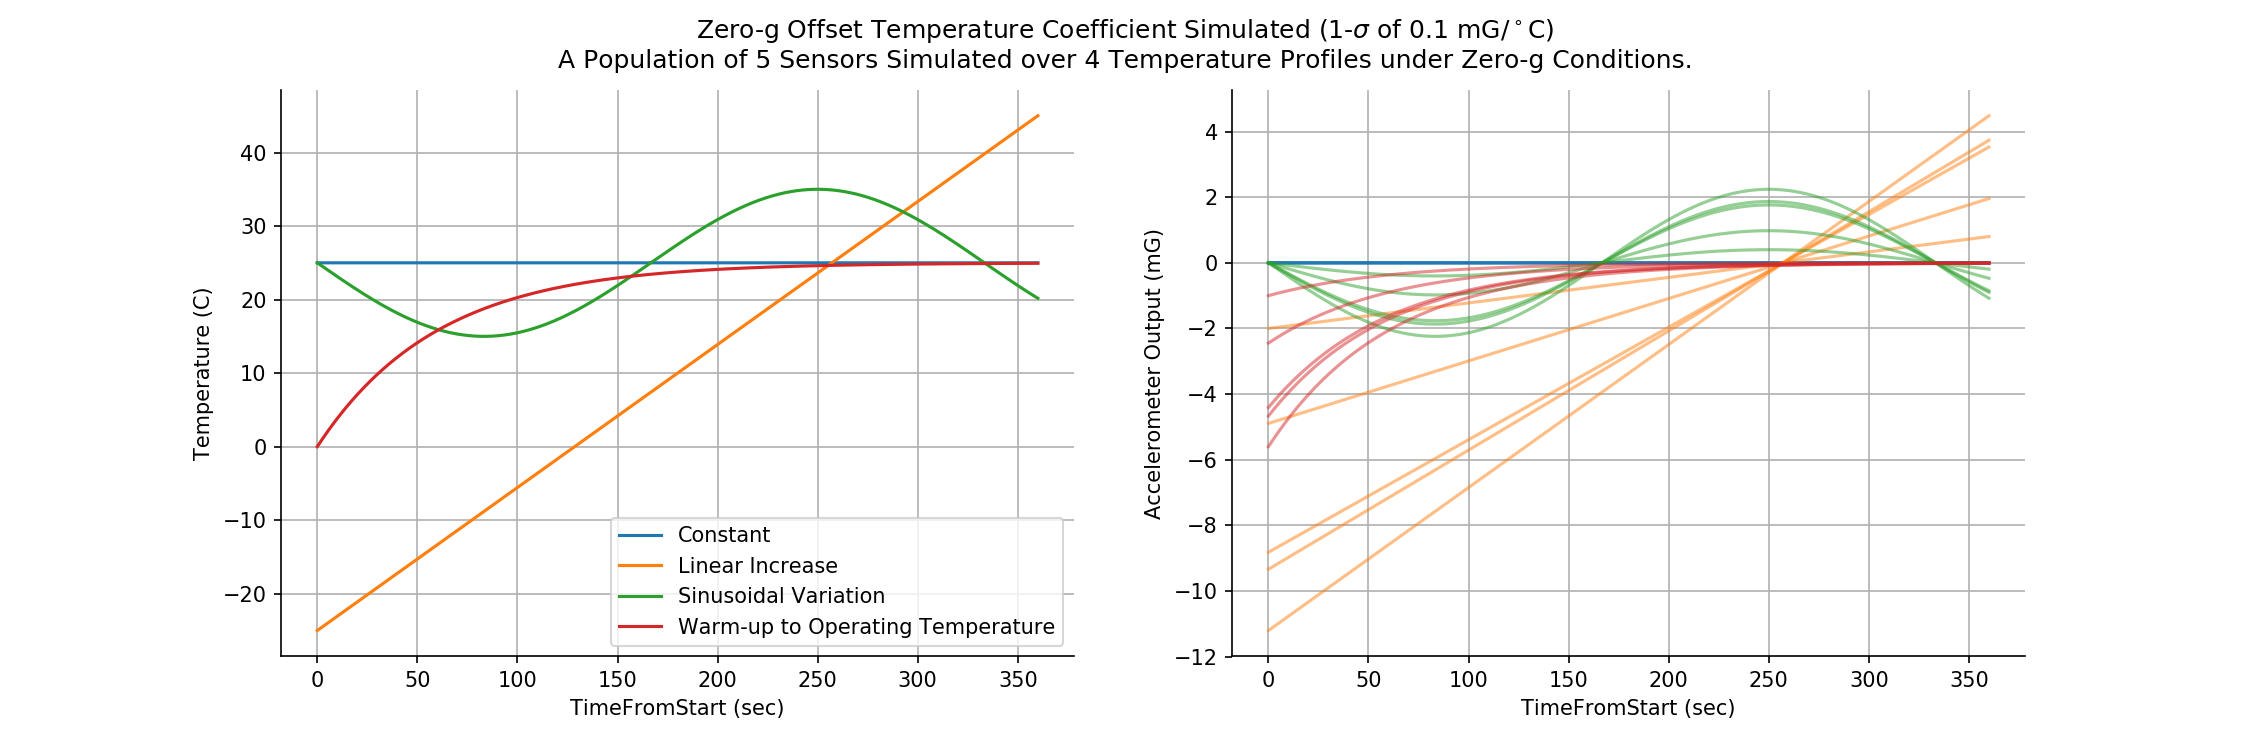 Example simulation visualizing the effect of accelerometer zero-g offset temperature coefficient over a range of temperature profiles